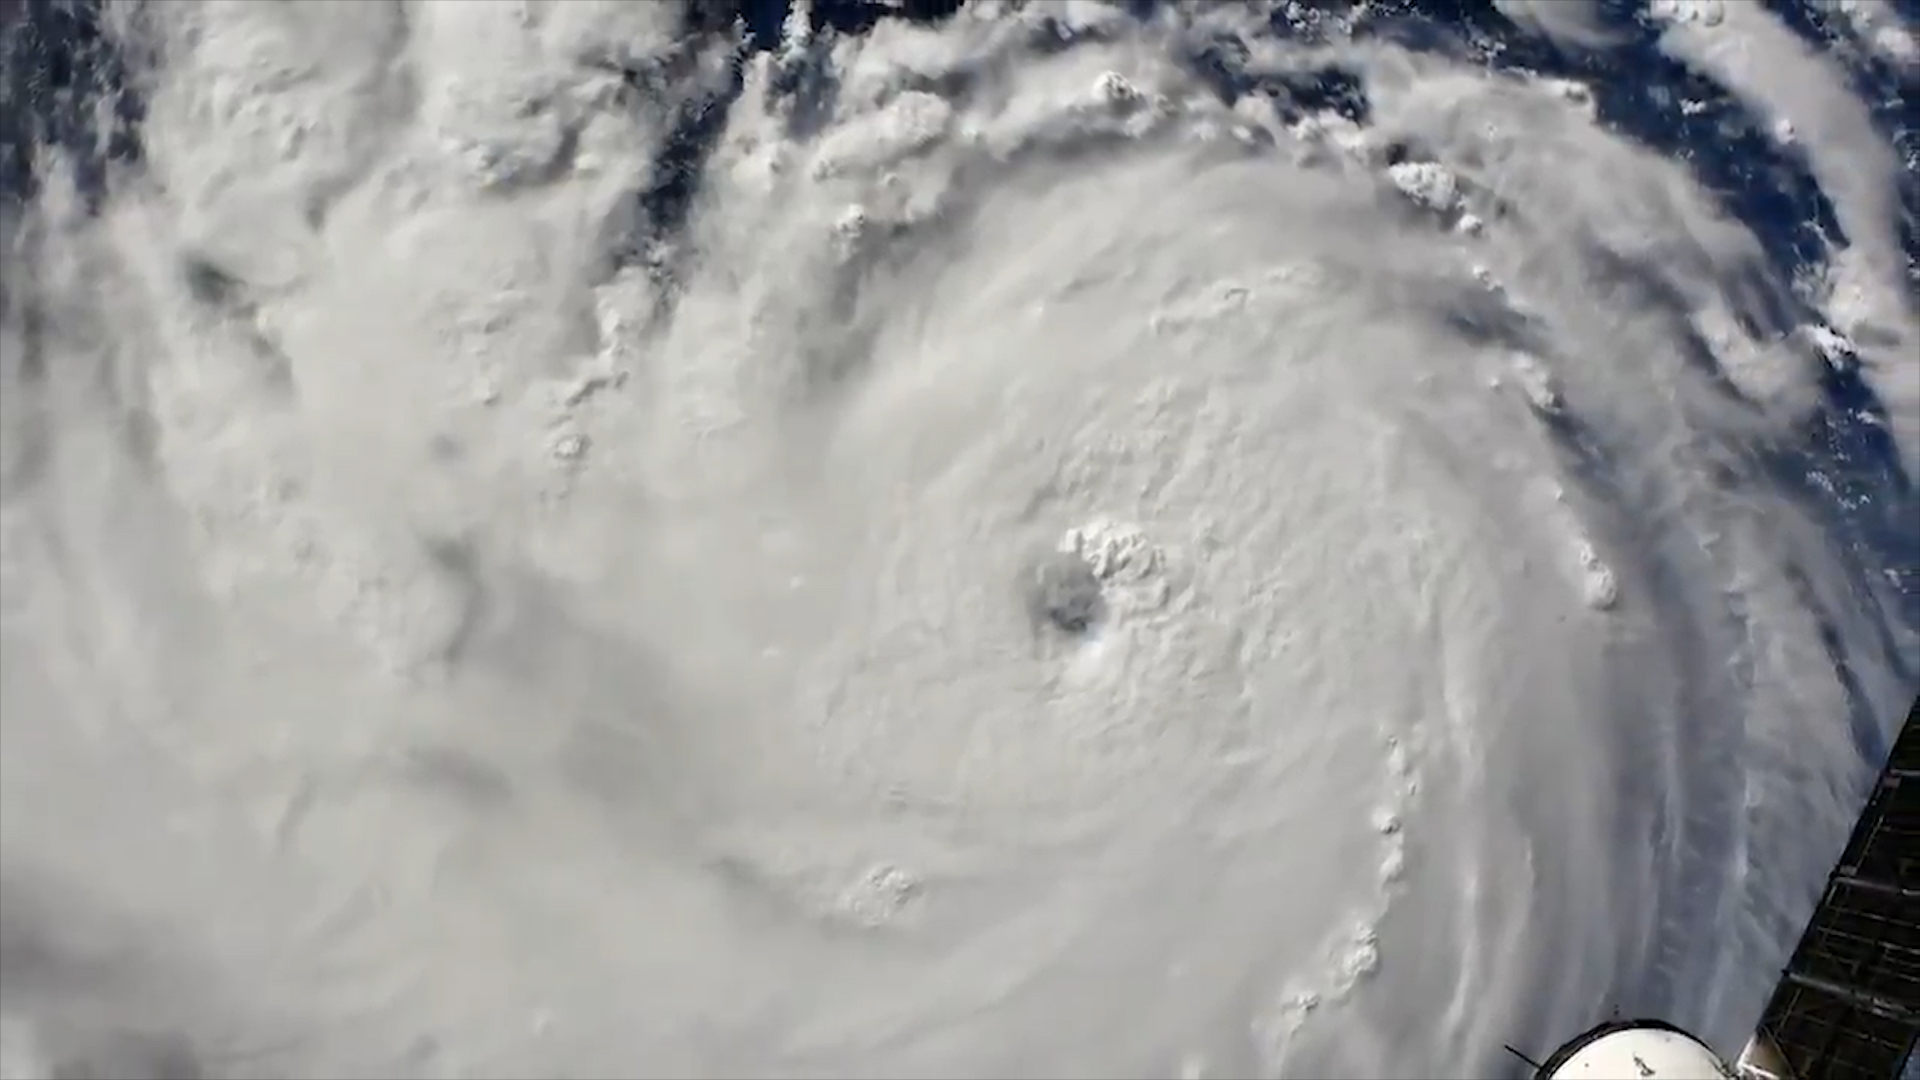 Hurricane Florence looks like a nightmarish monstrosity - 'even from space'